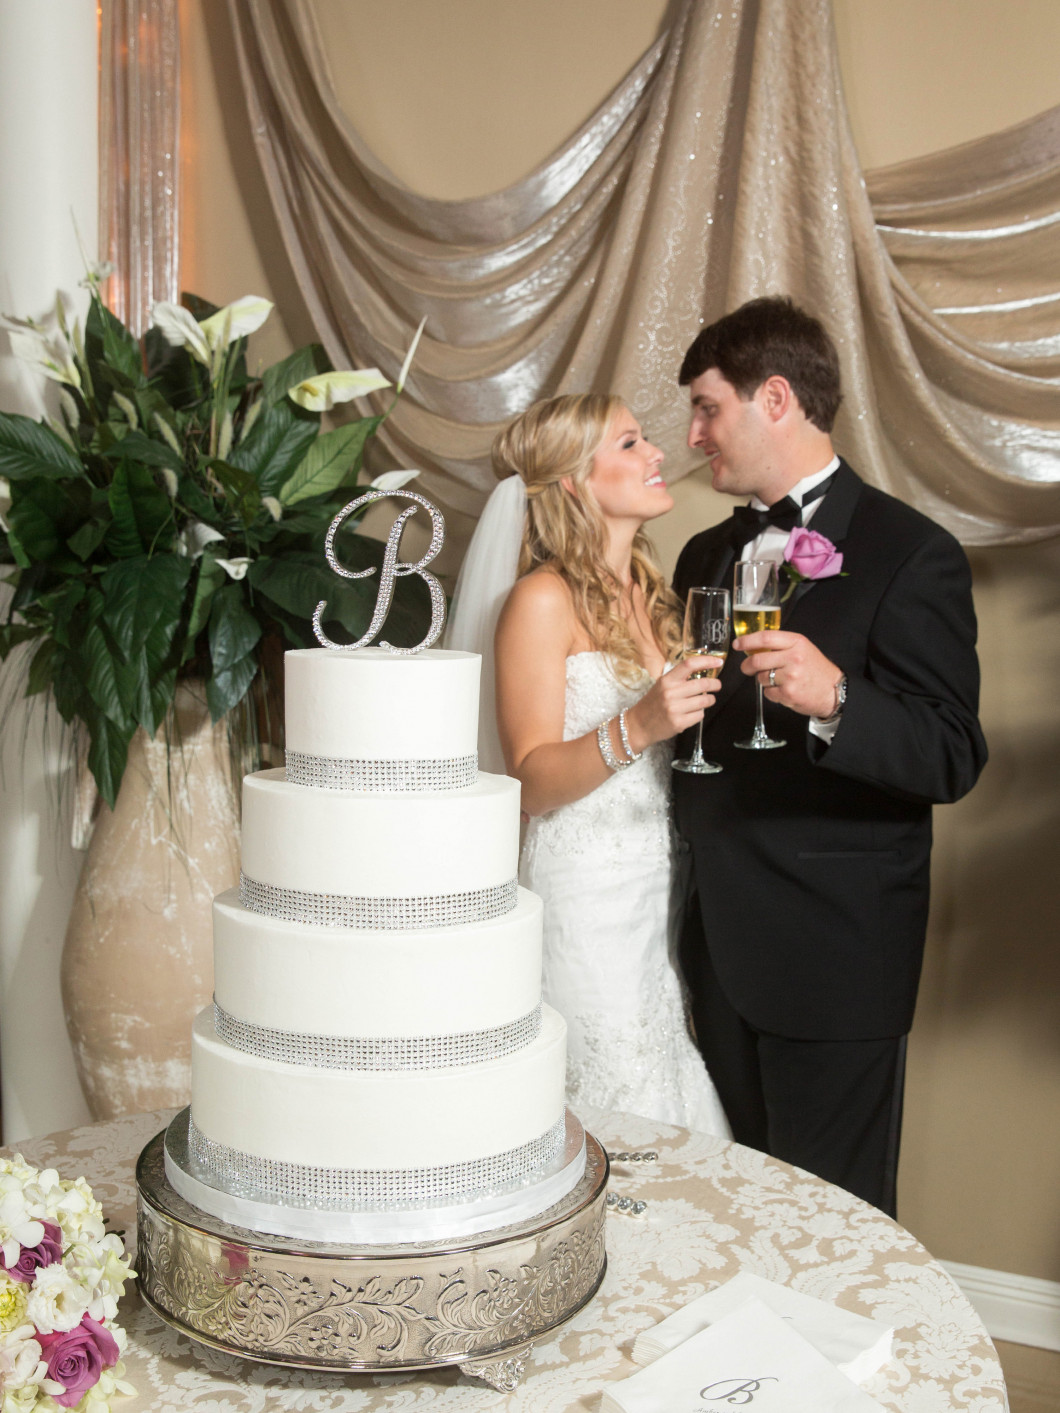 Wedding Venue And Catering Services Baton Rouge La Stage 1